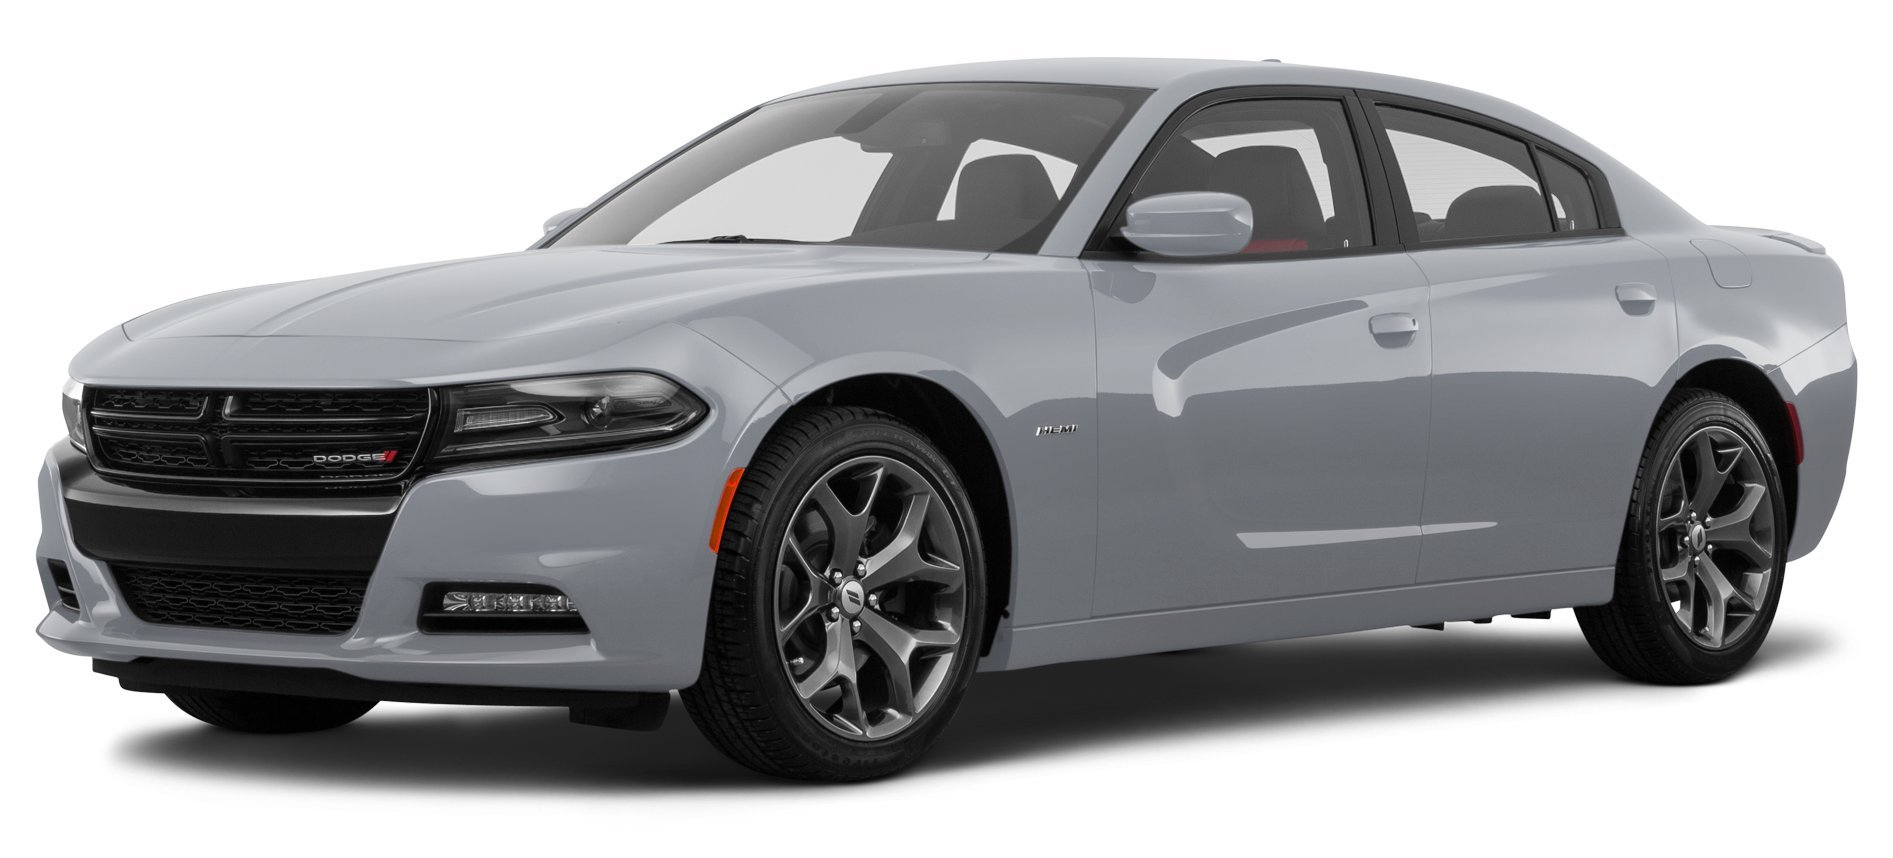 2017 dodge charger reviews images and specs vehicles. Black Bedroom Furniture Sets. Home Design Ideas